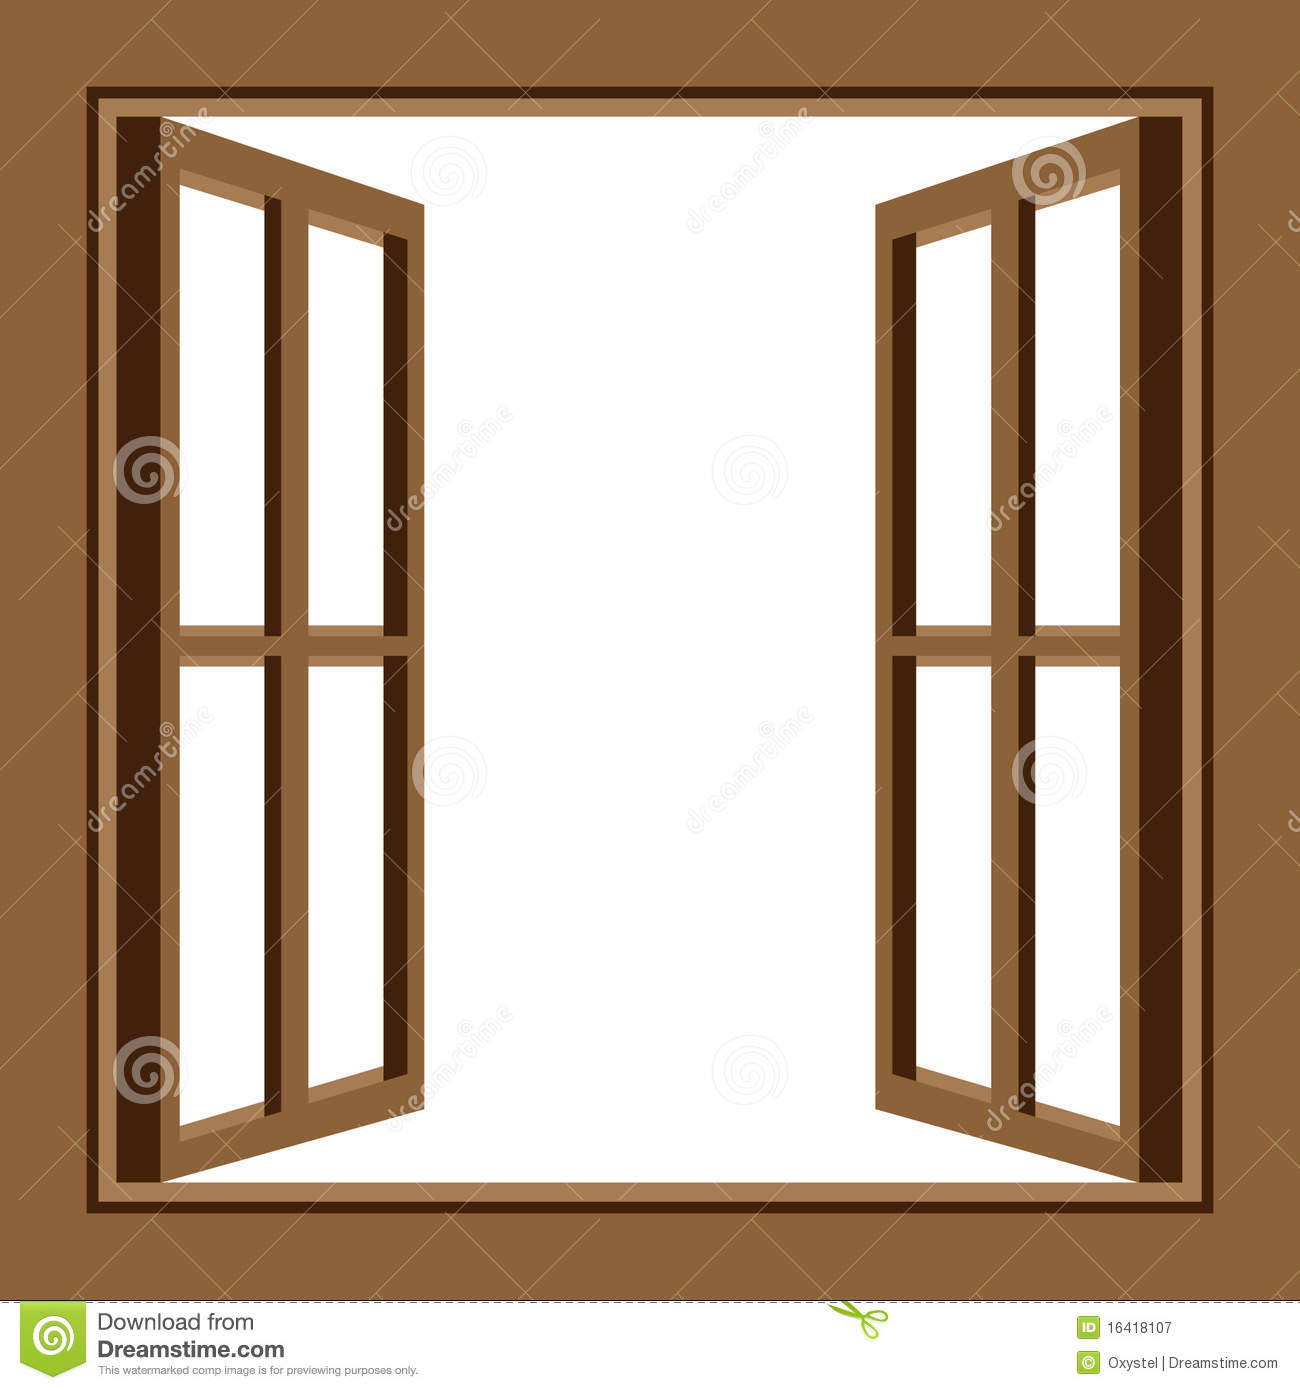 Best window clipart 10390 for Window design cartoon